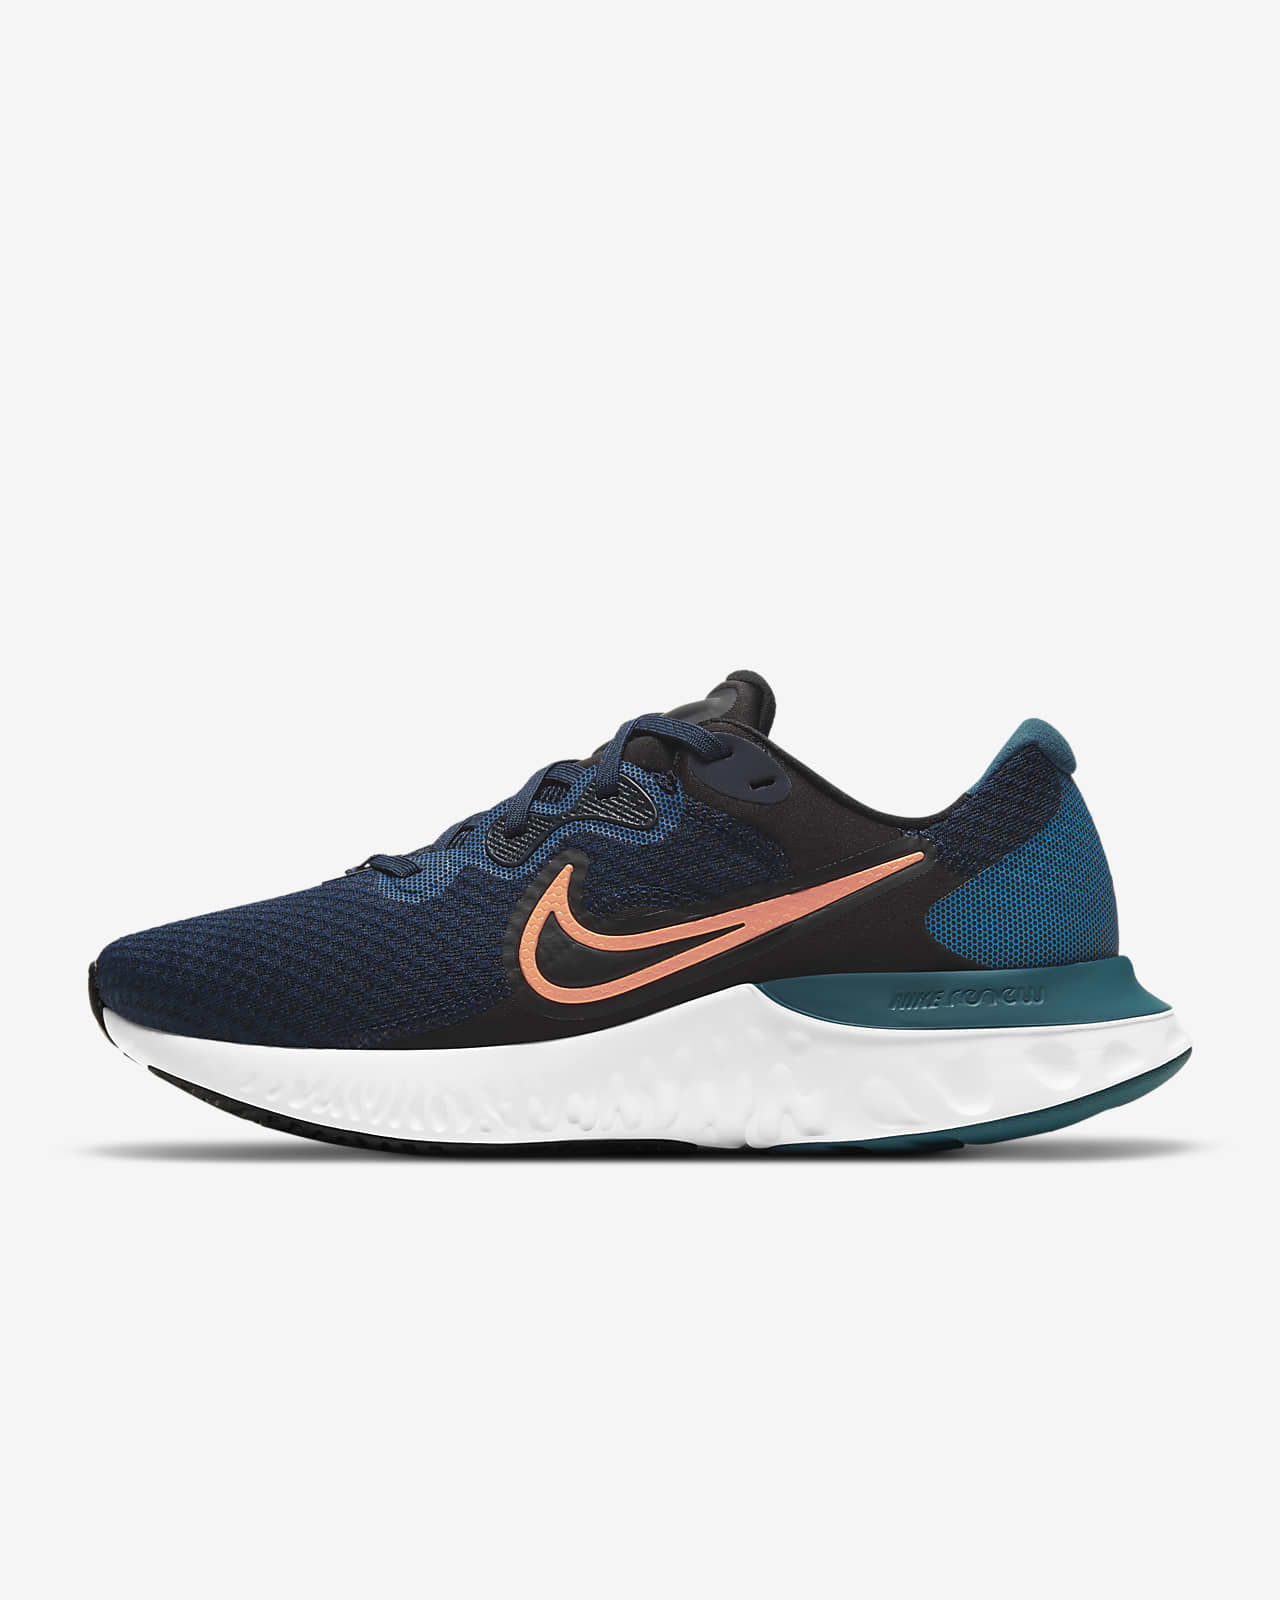 Nike Renew Run 2 Men's Running Shoe